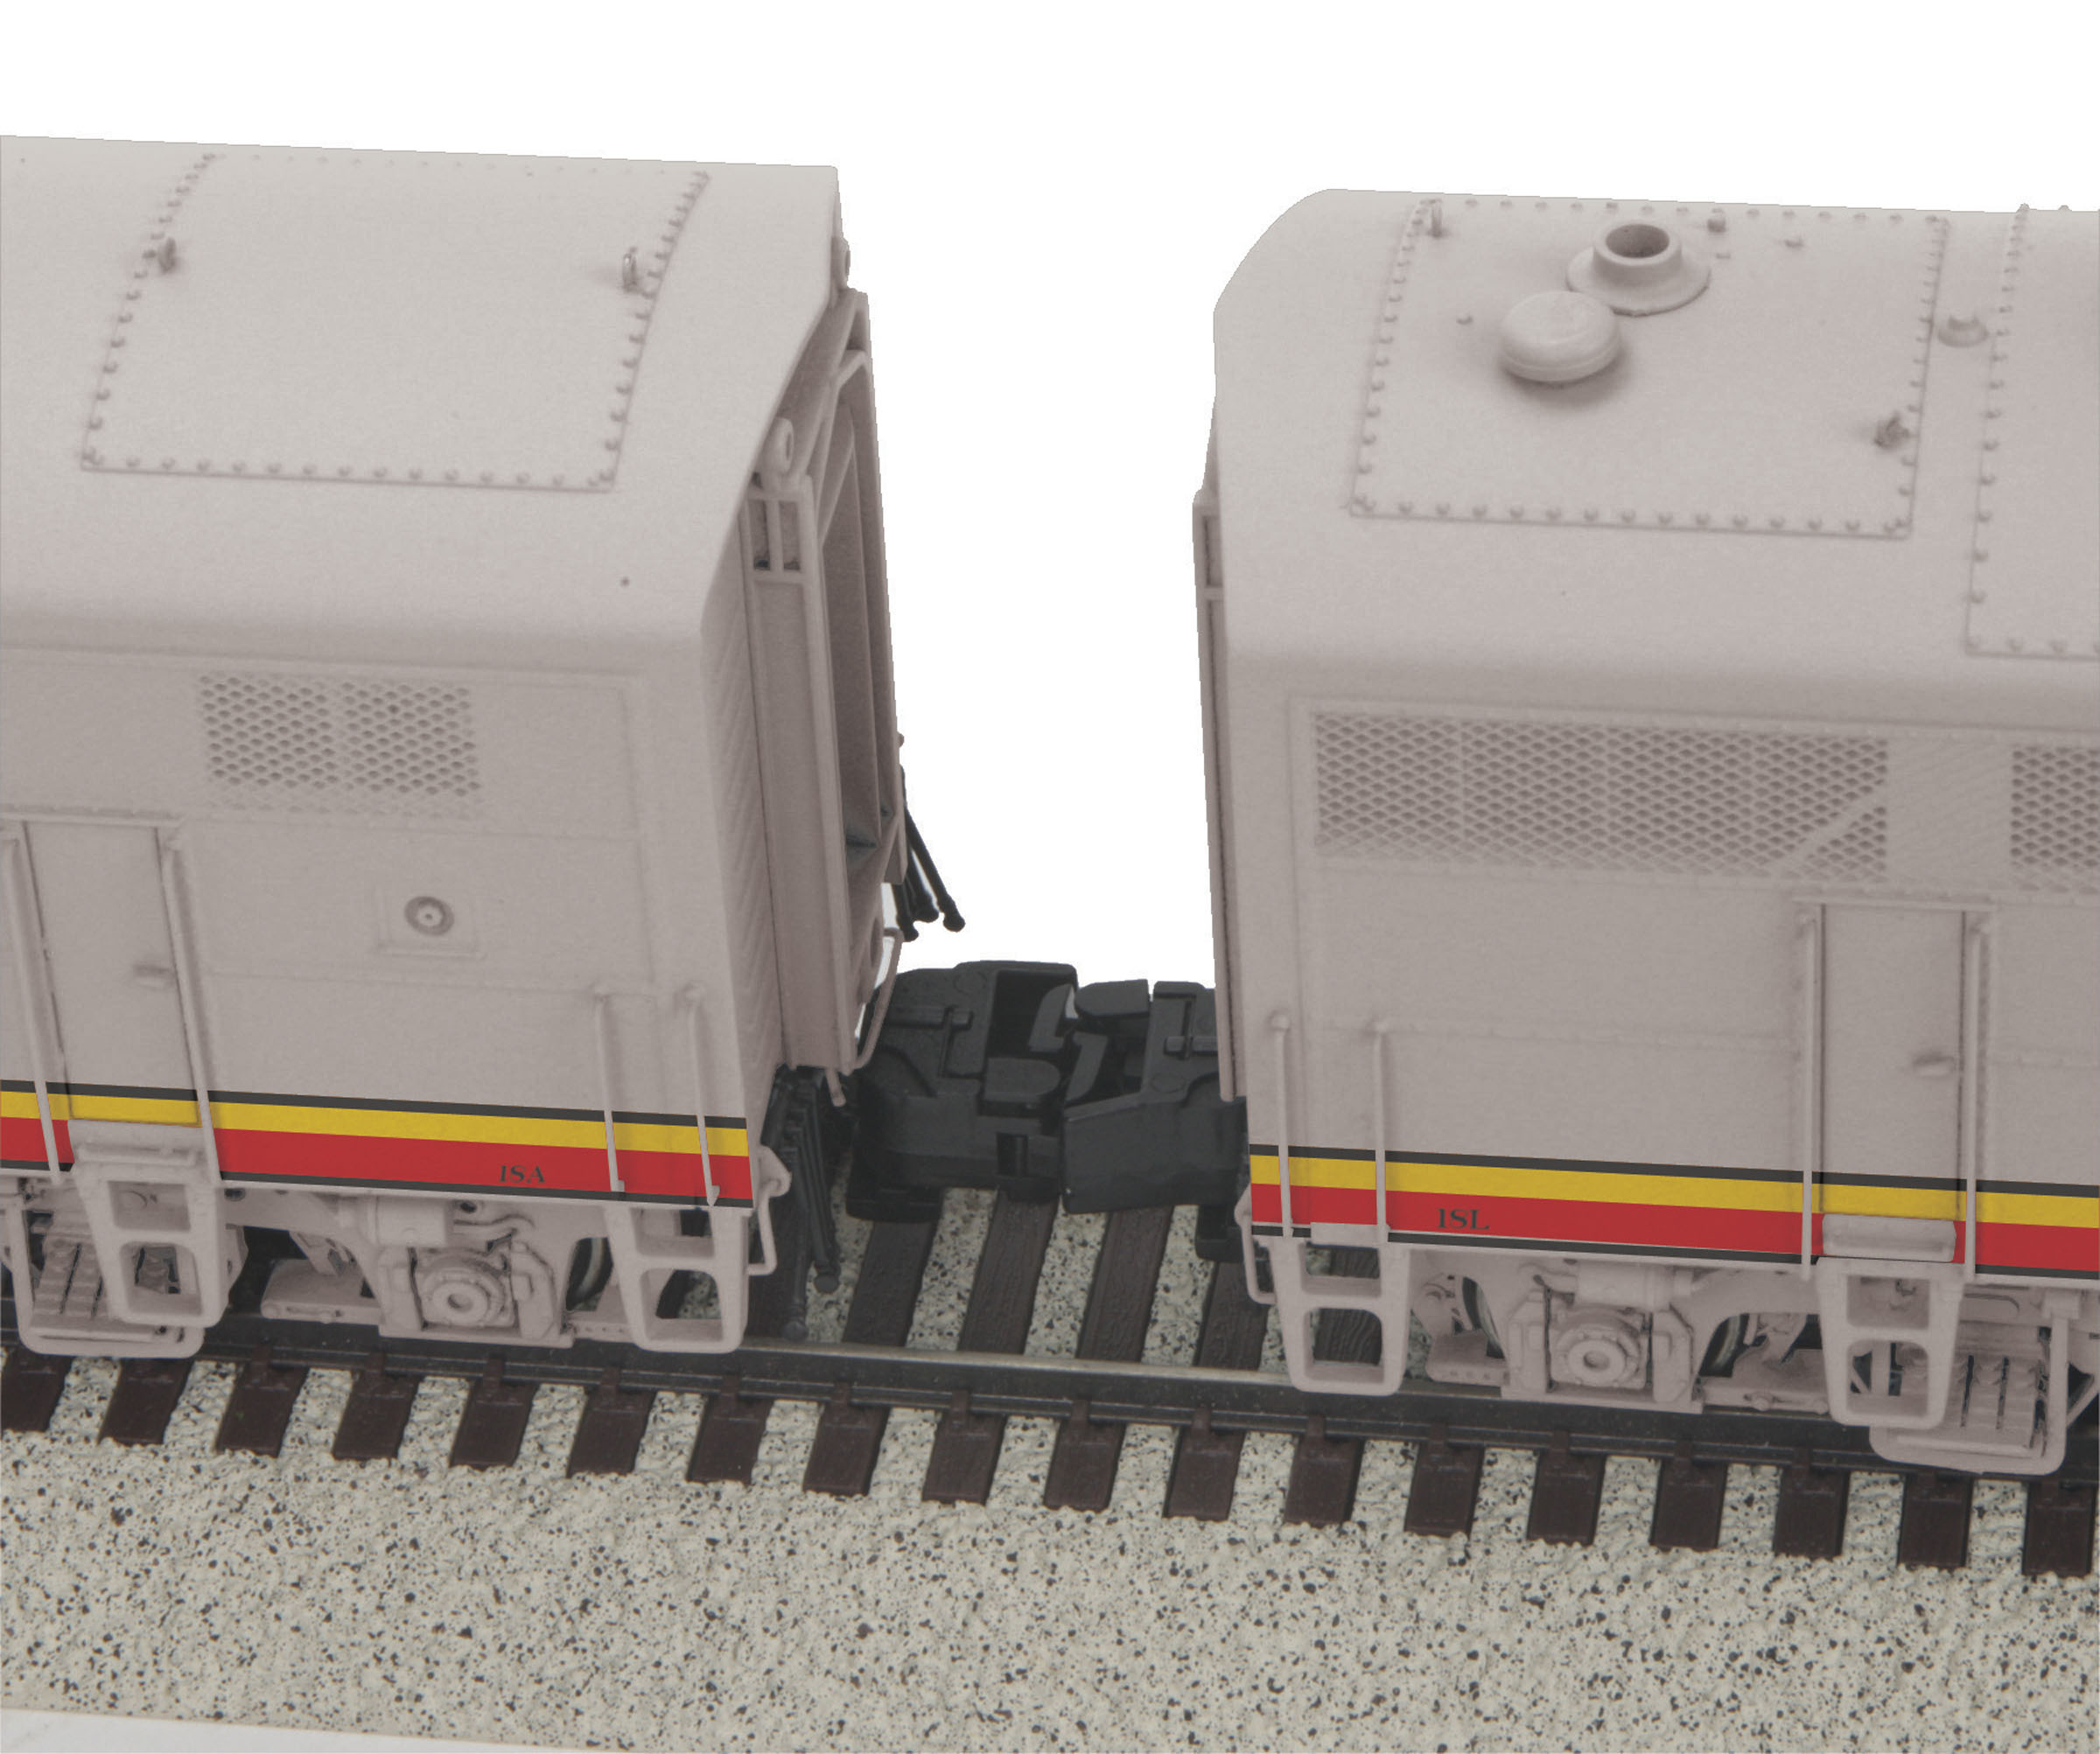 35 20019 1 Mth Electric Trains